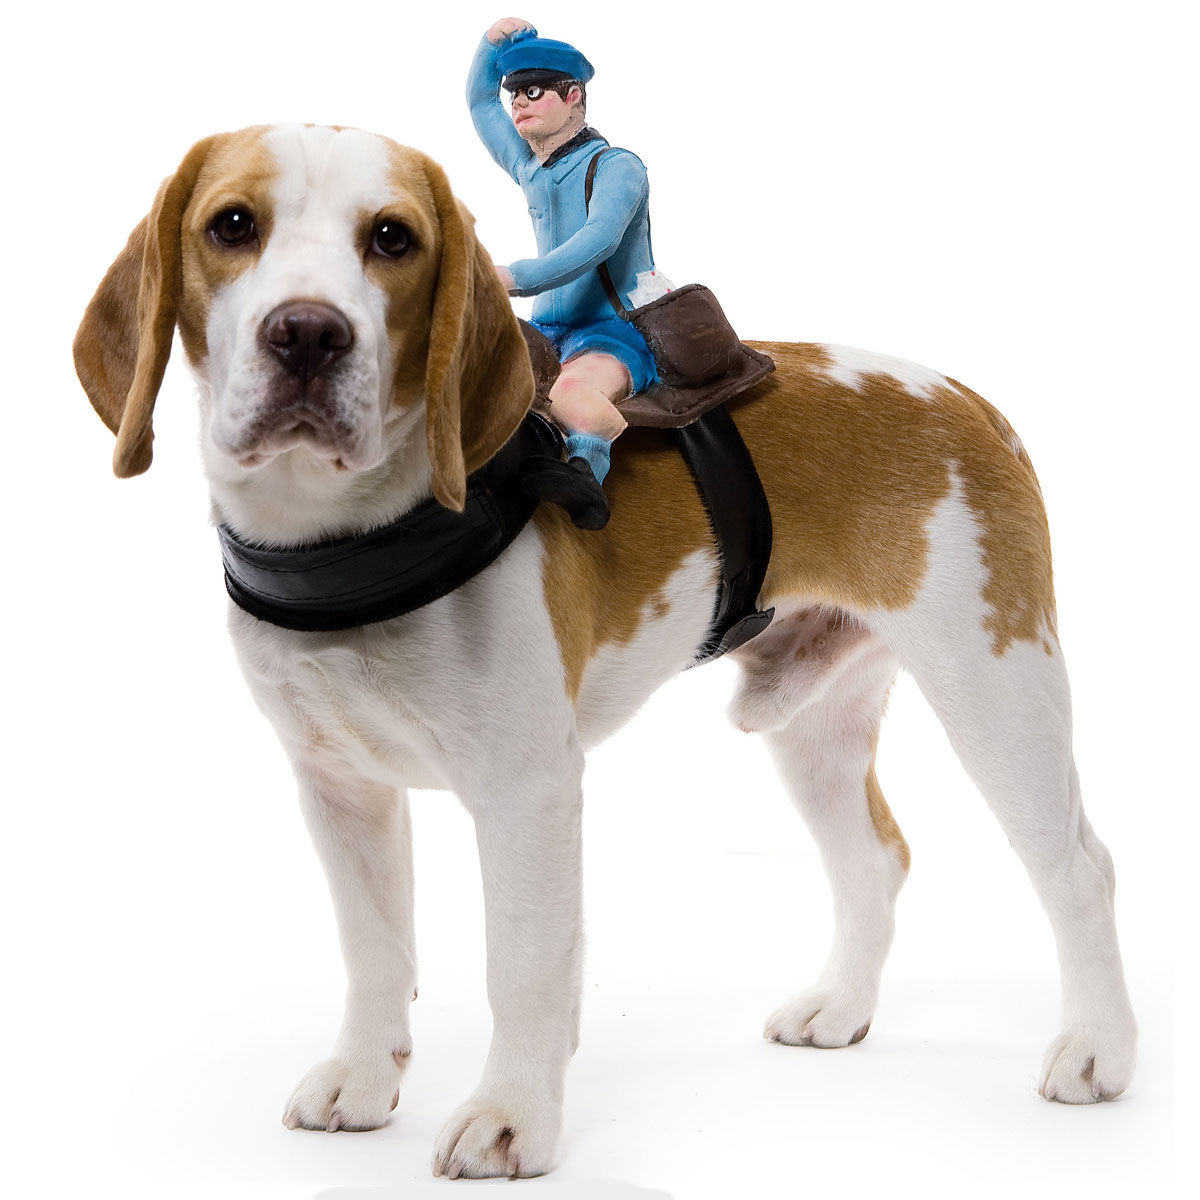 Dog Costumes For Dogs photo - 1